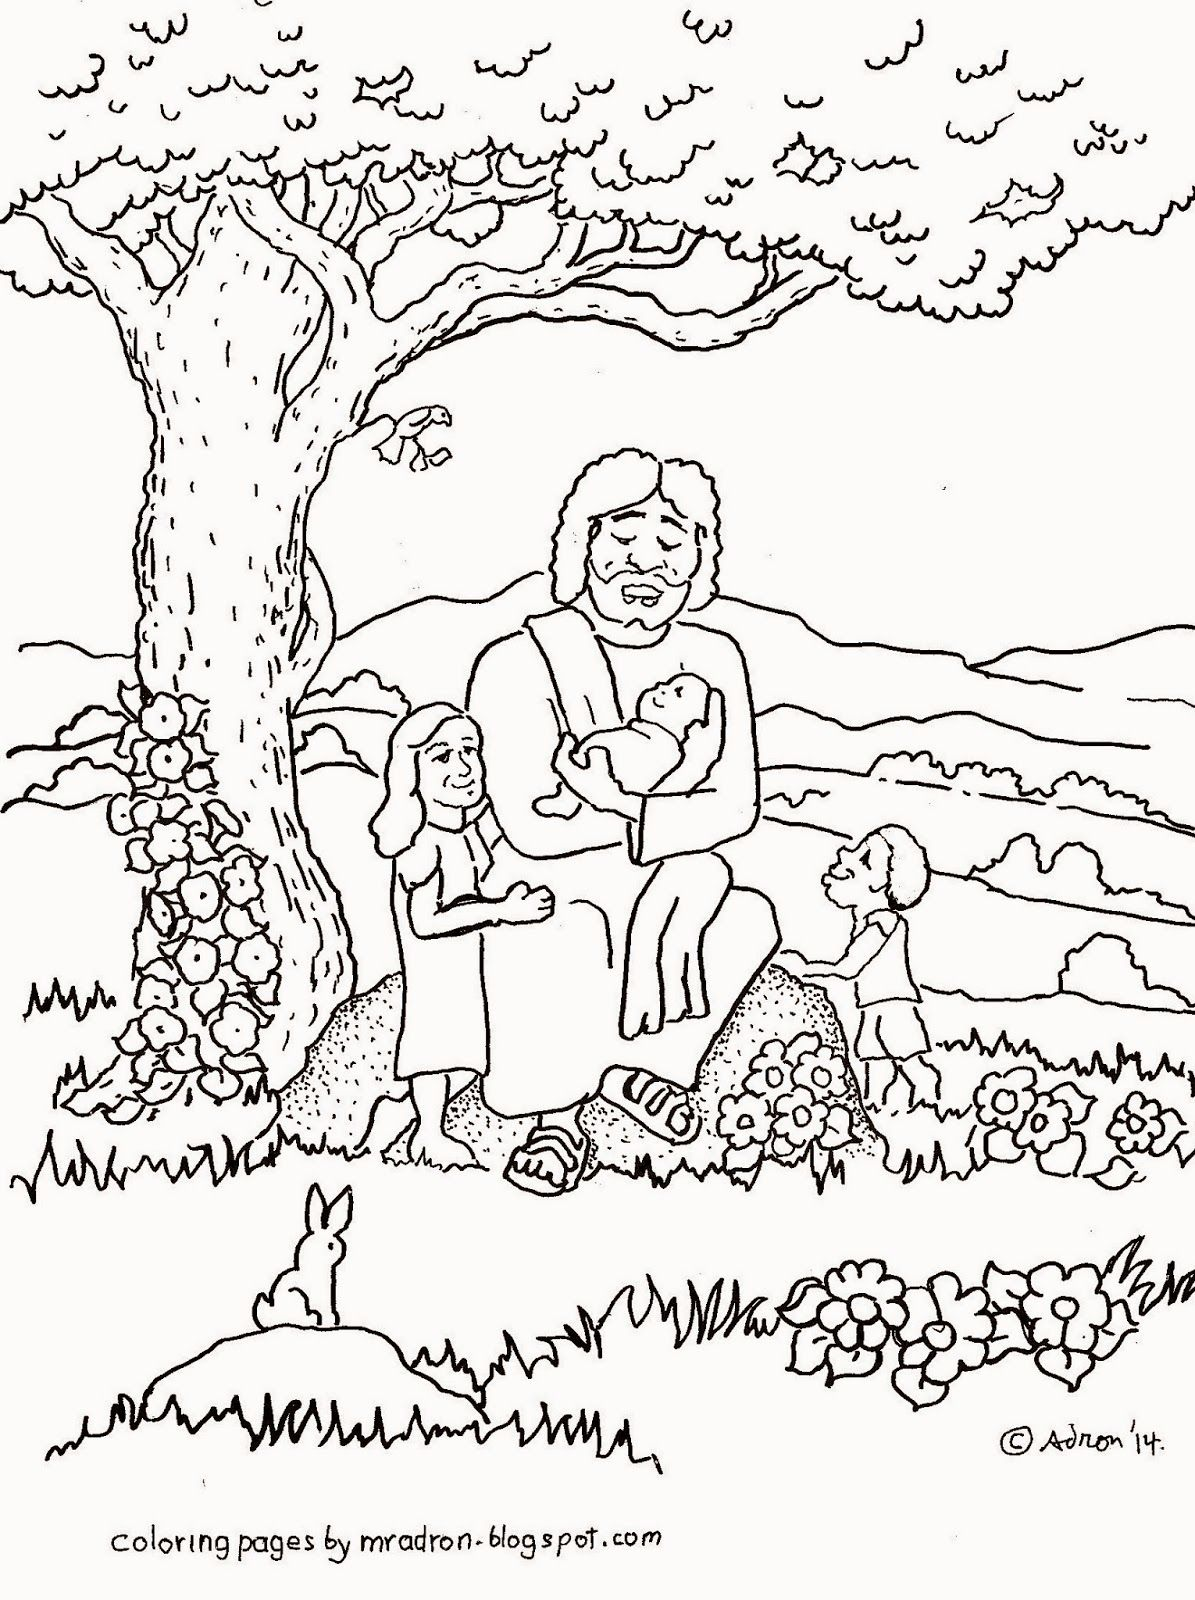 Coloring Pages Jesus And The Children Coloring Pages coloring page jesus loves the children az pages for kids by mr adron blesses children